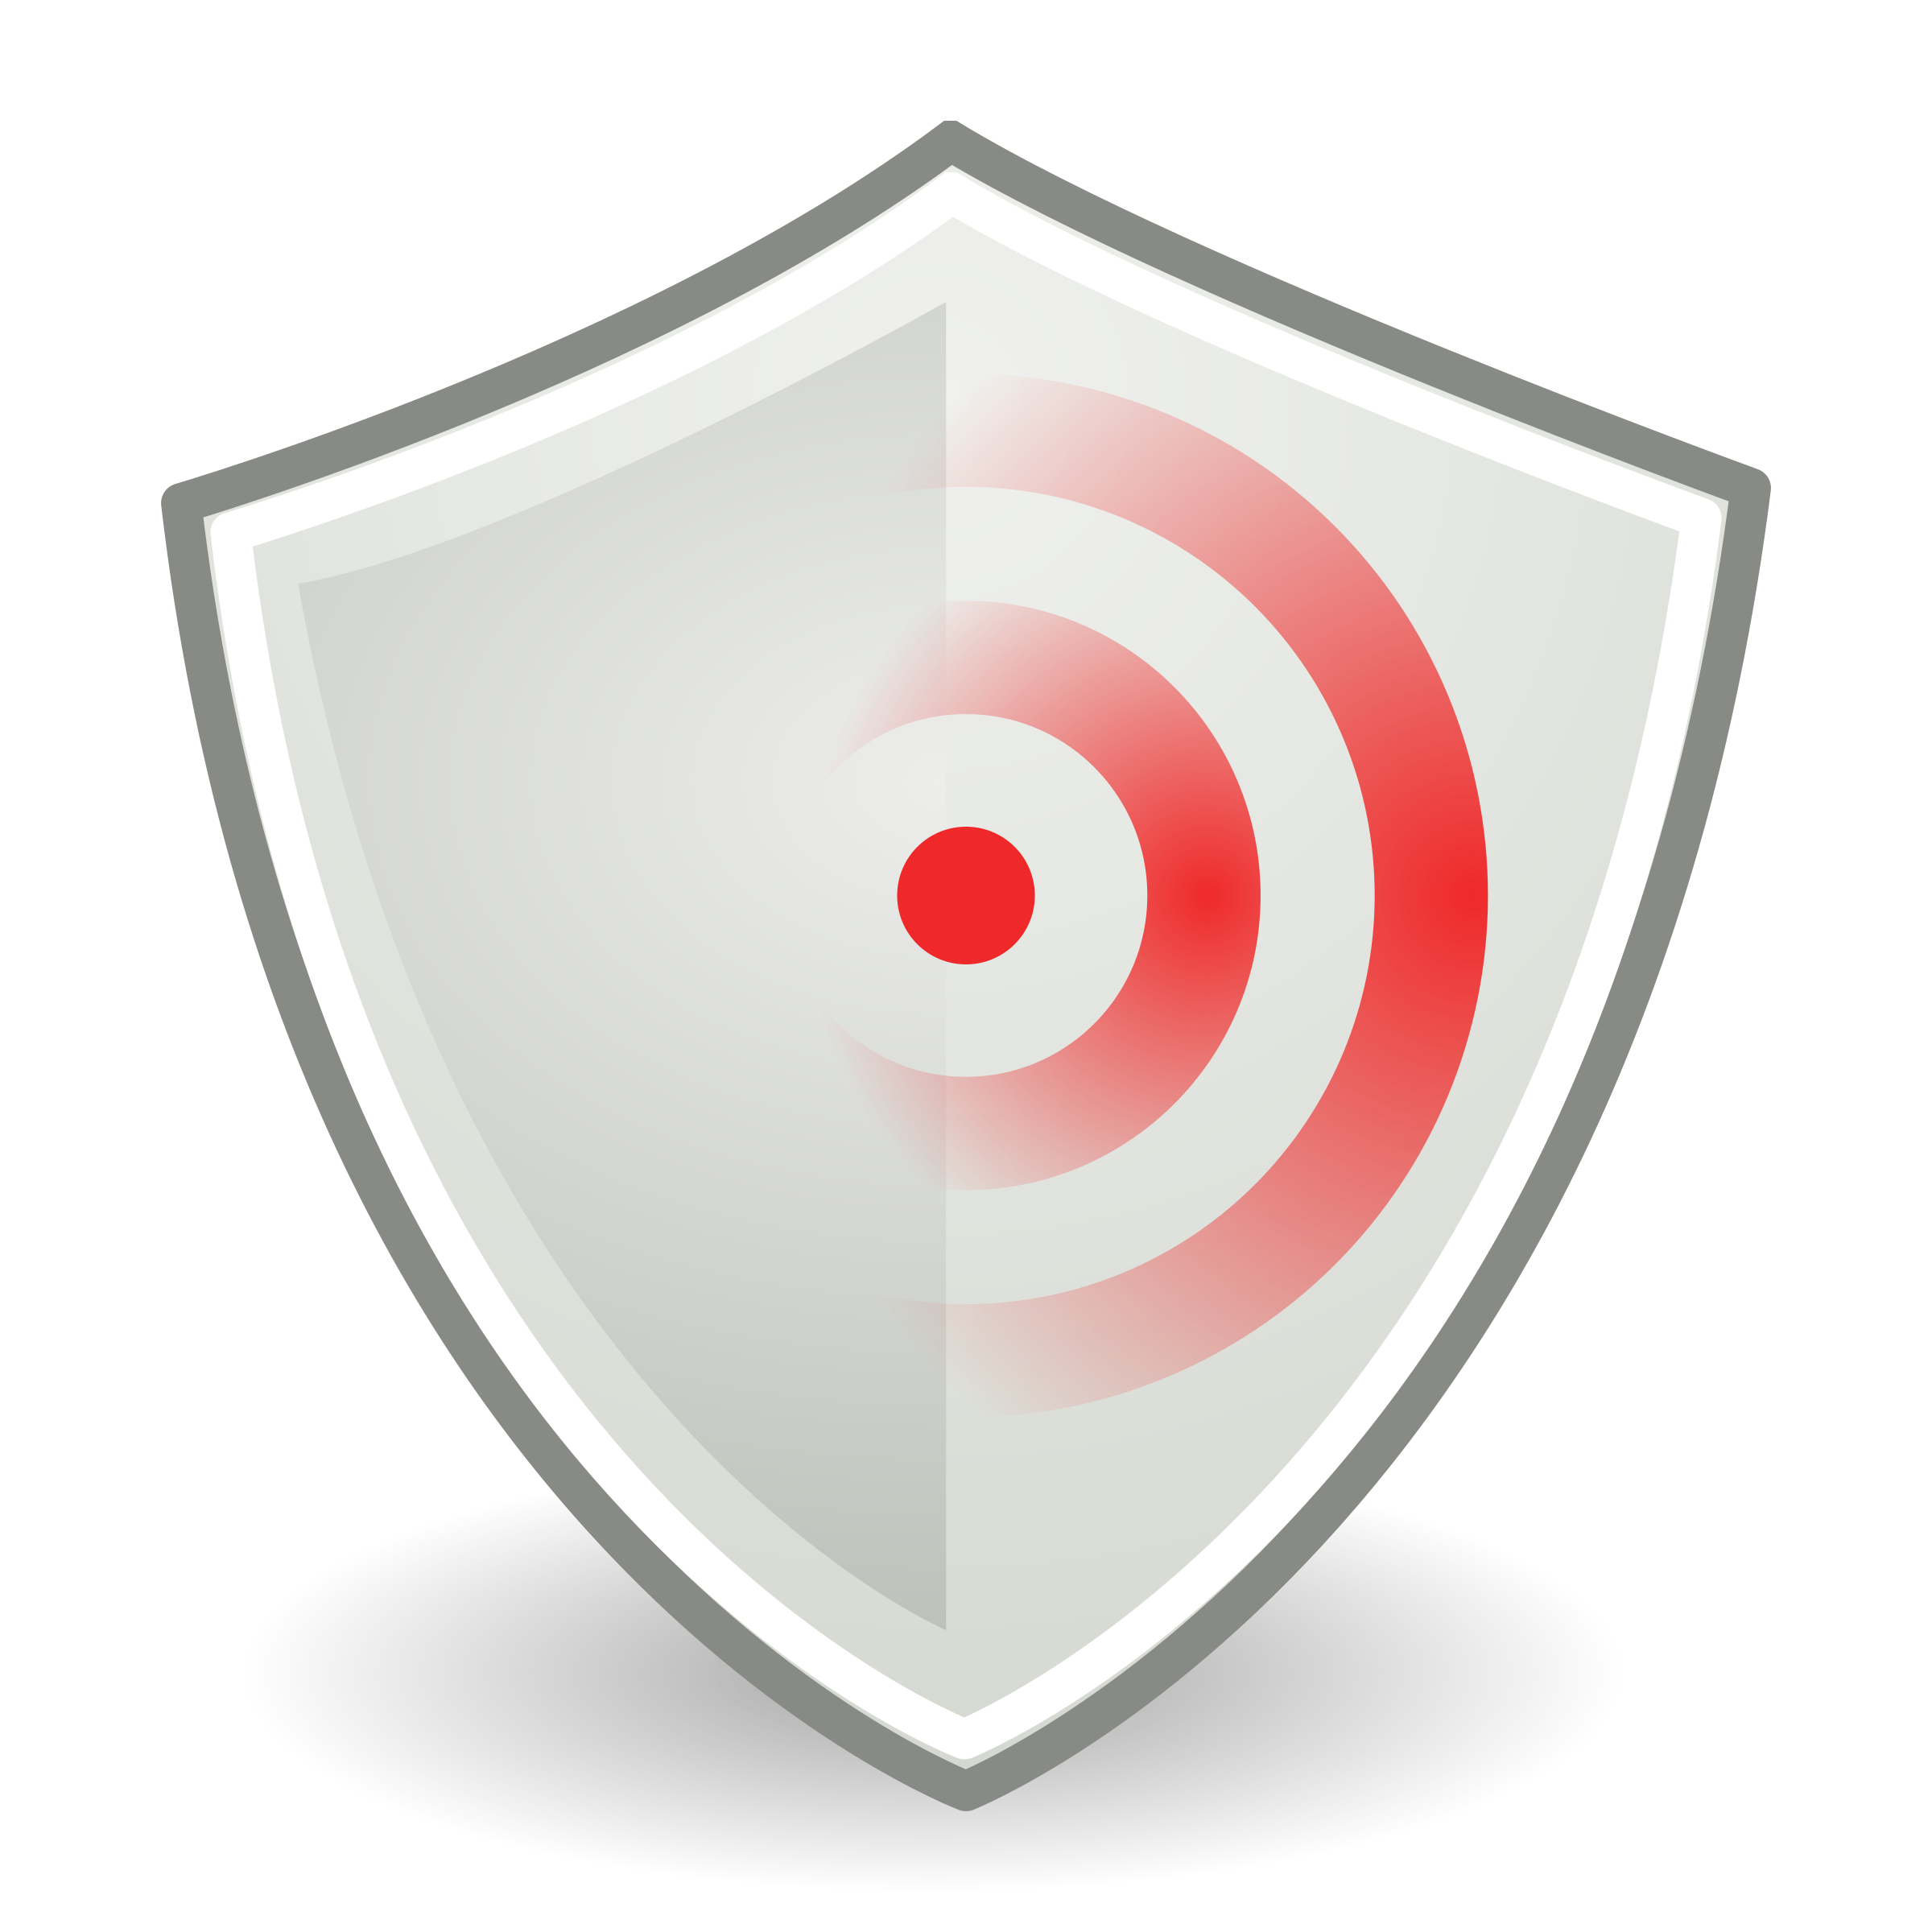 tango network wireless encrypted by warszawianka